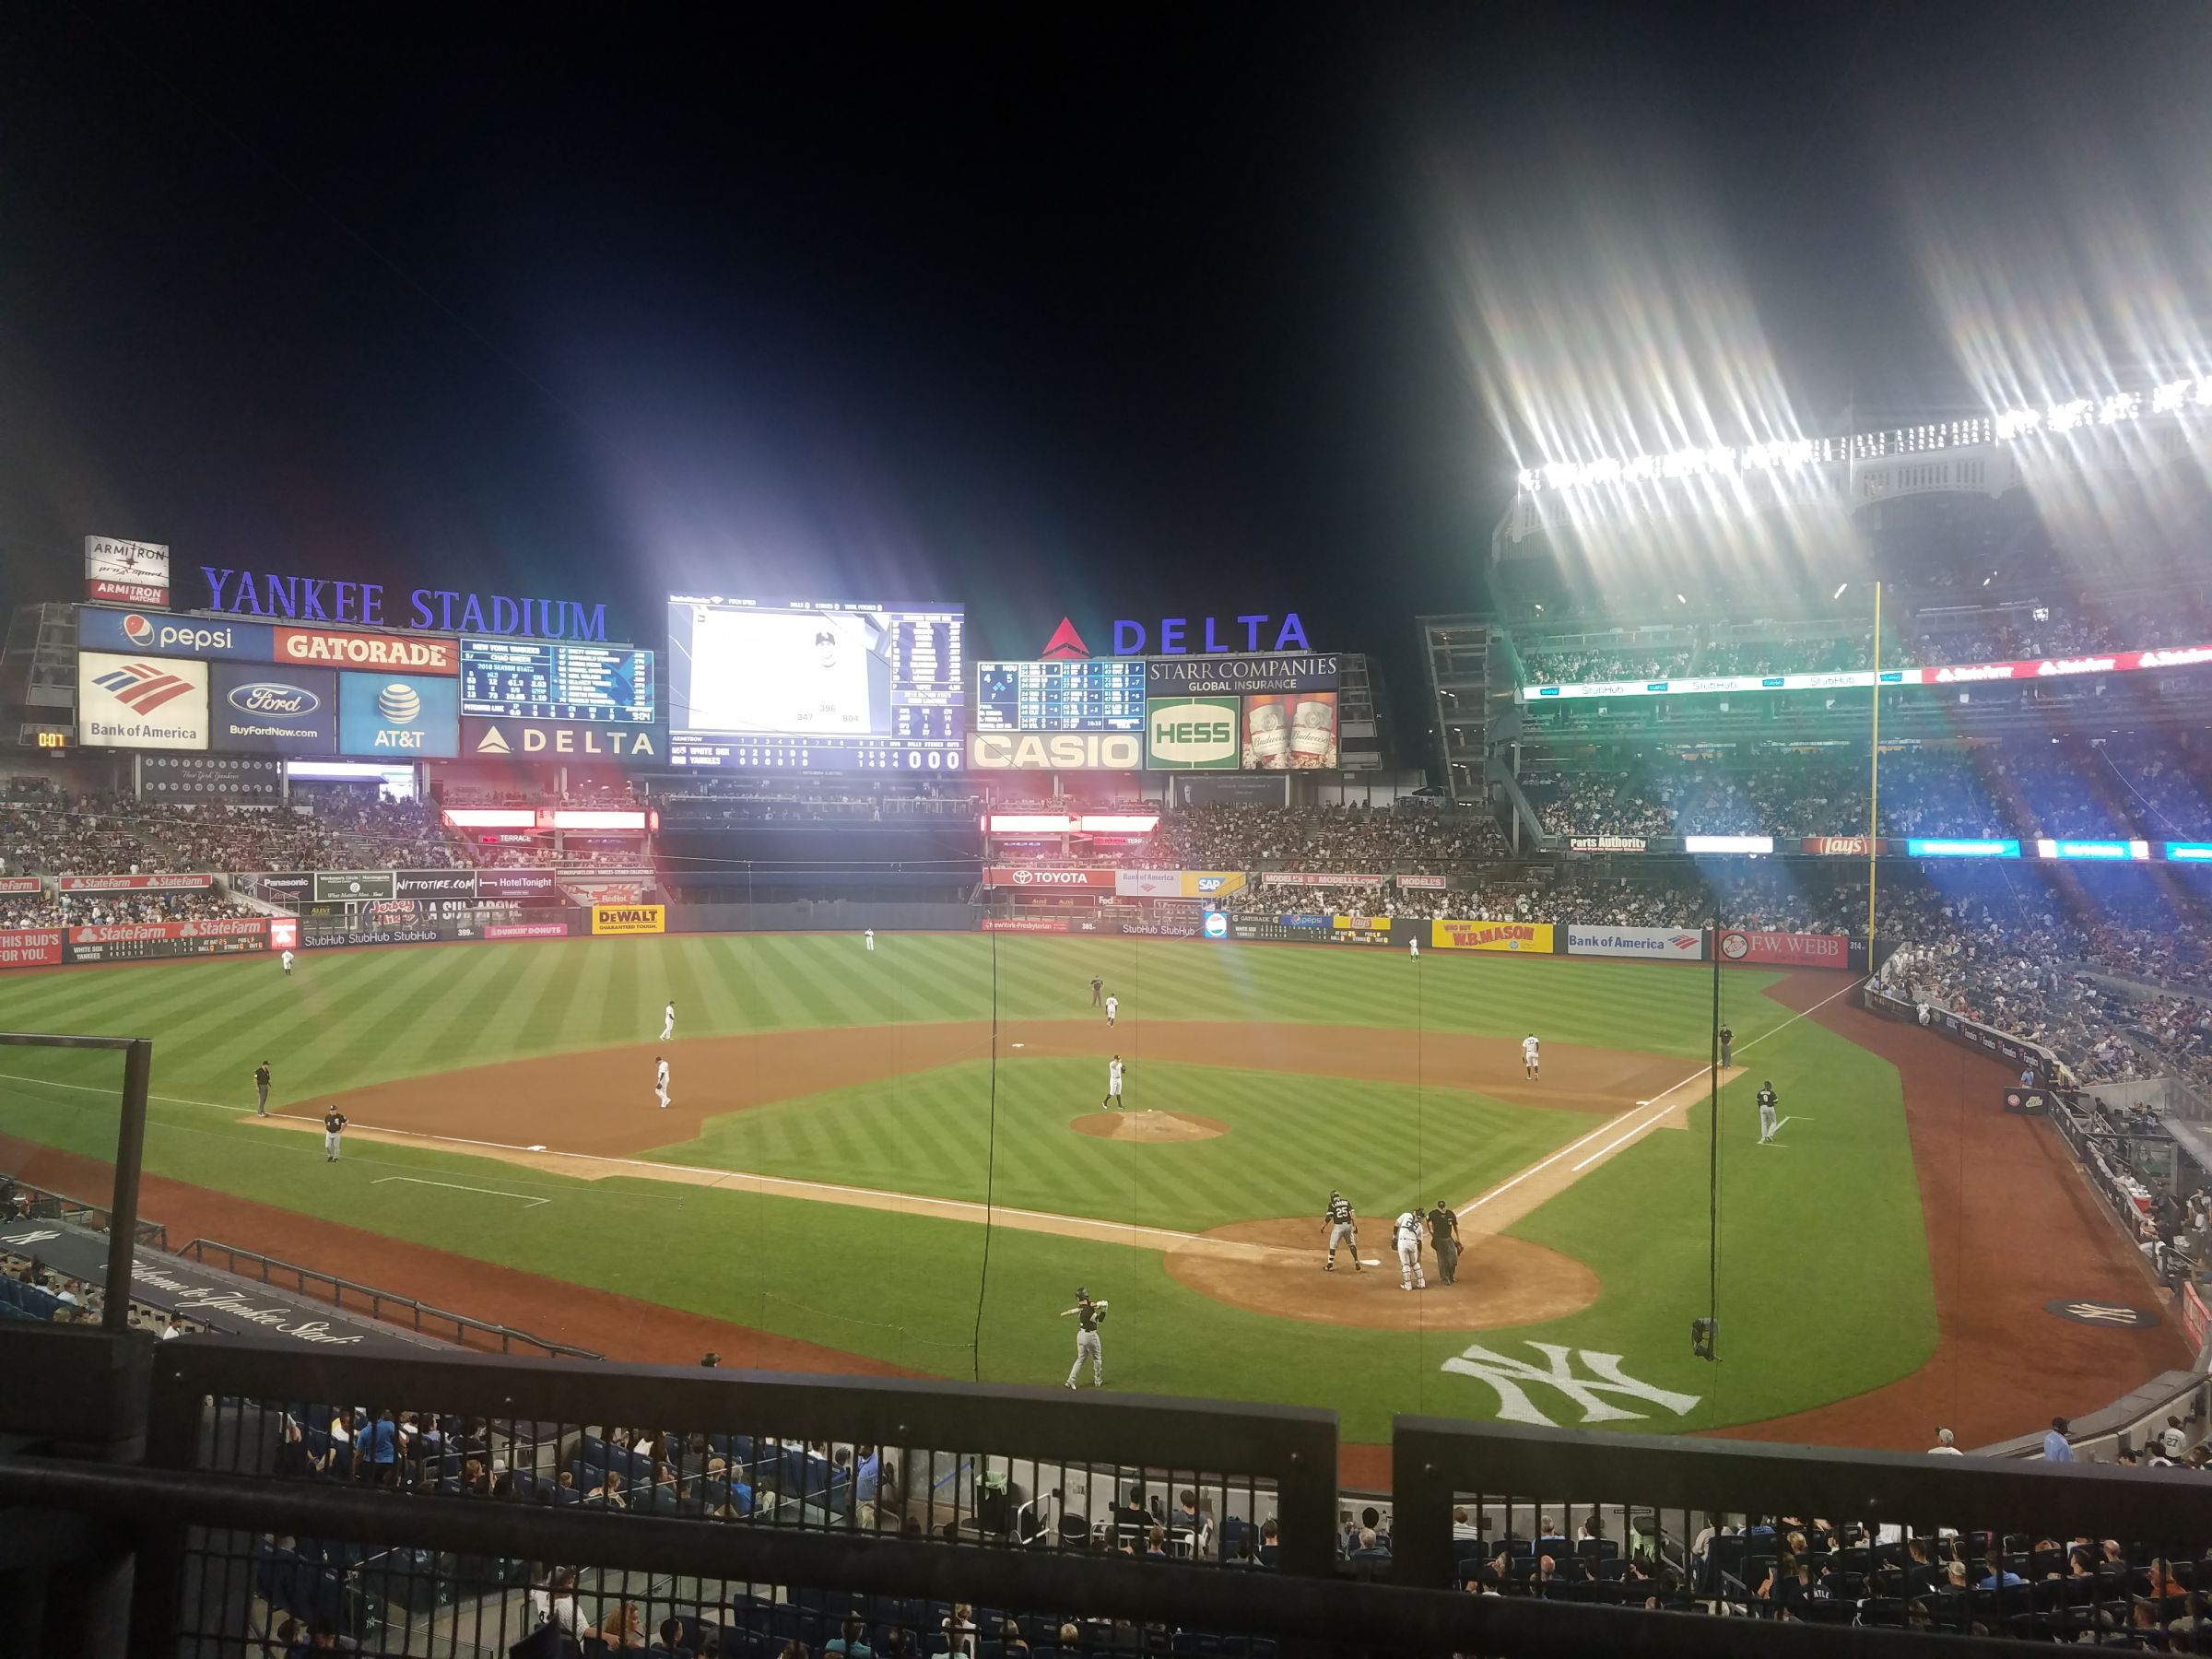 New York Yankees Seat View for Yankee Stadium Section 221A, Row 2, Seat 8